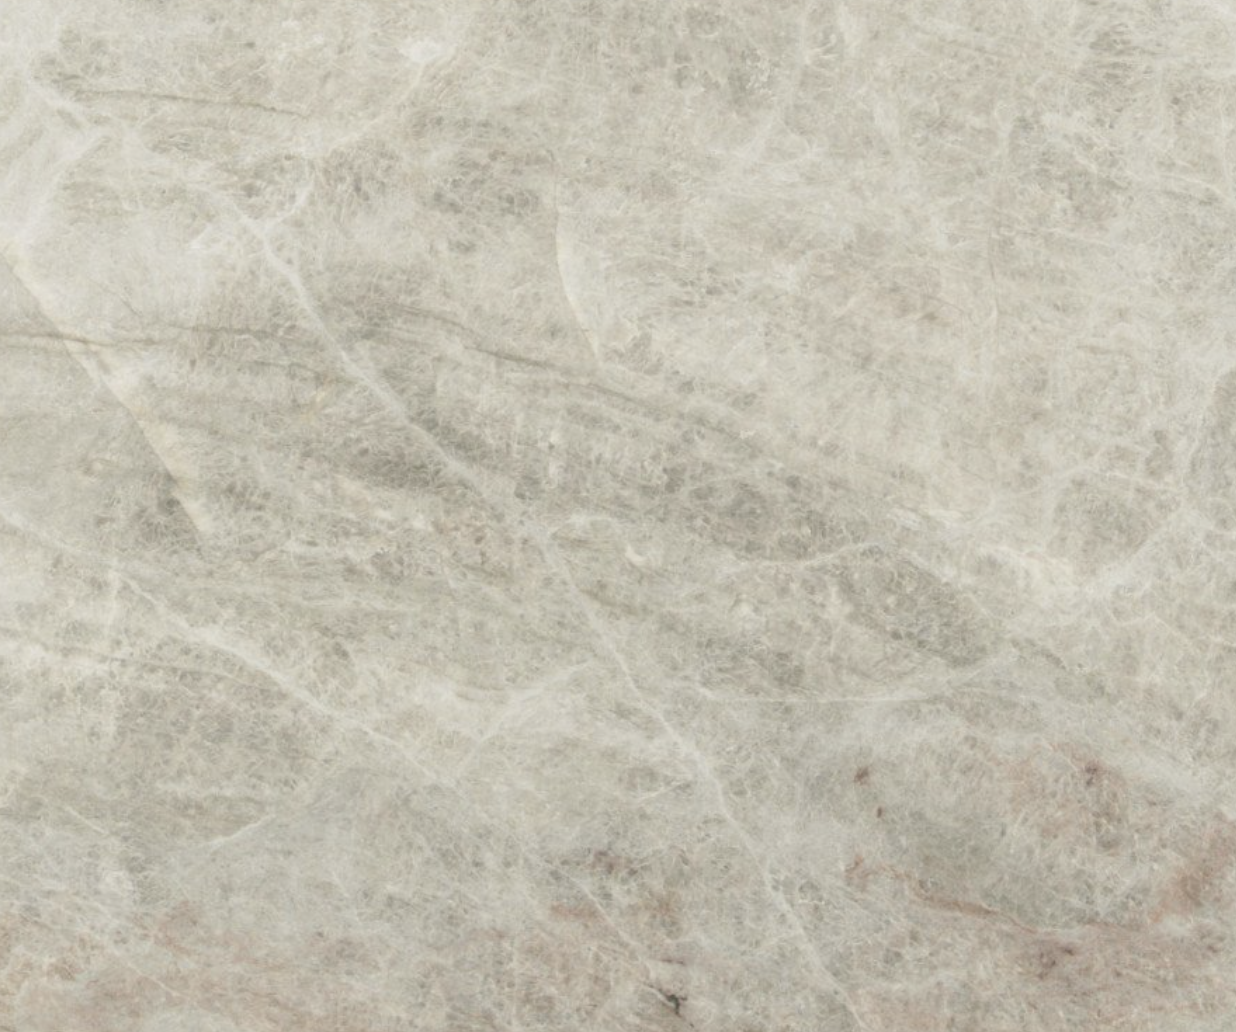 Madreperla - Originating from Brazil Madreperla quartzite has beige and grey colours. It is suitable for both interior and exterior projects. | Matter of Stuff